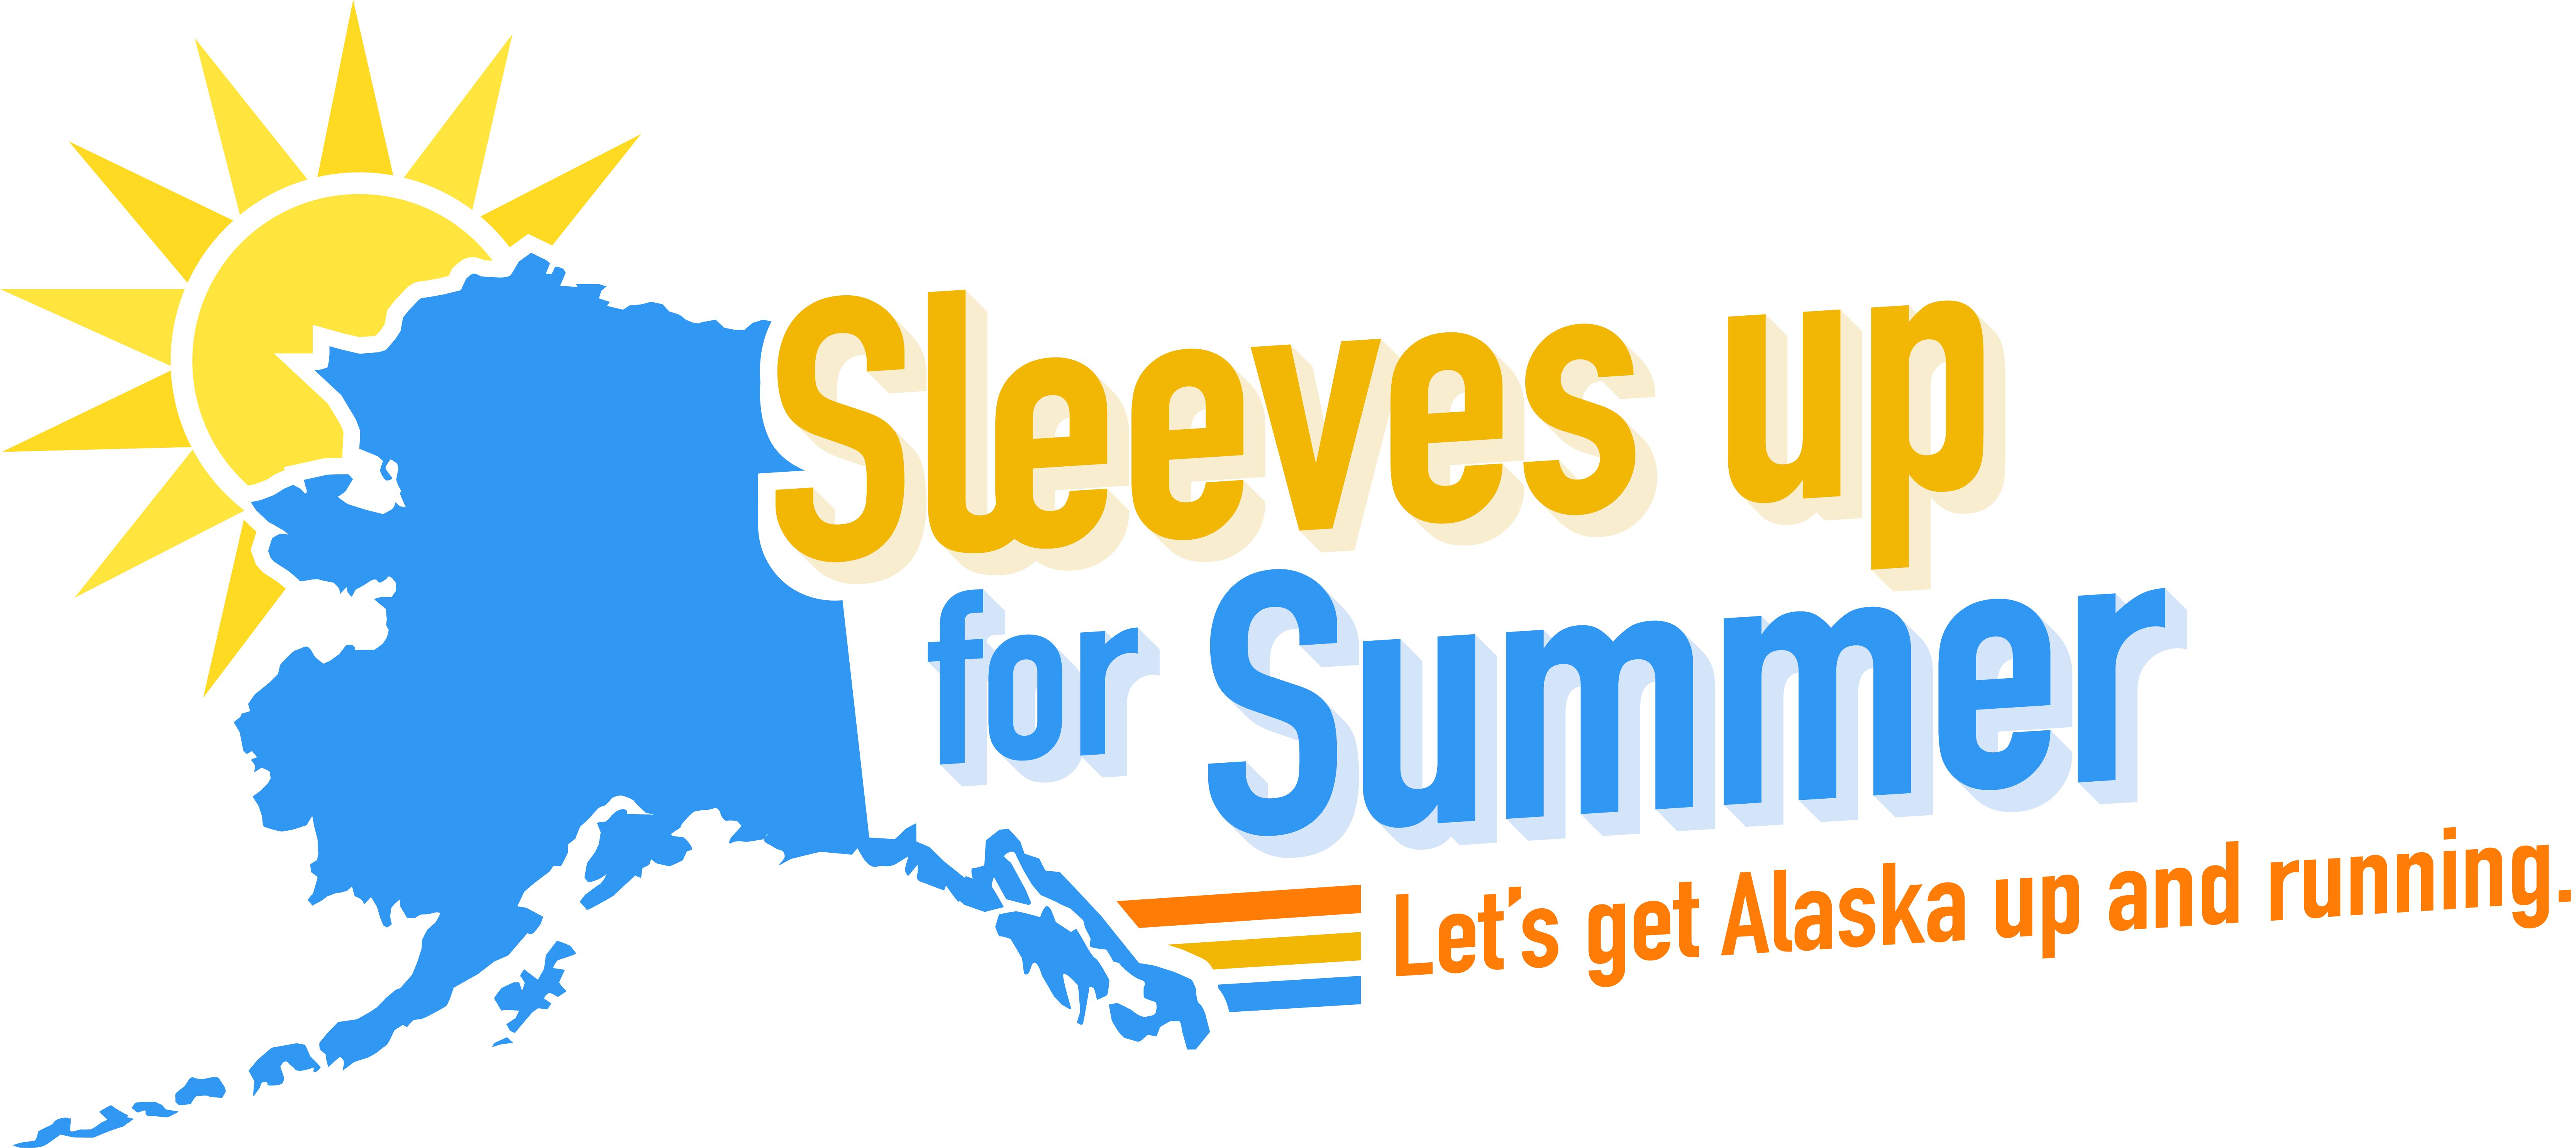 Sleeves up for Summer: Let's get Alaska up and running